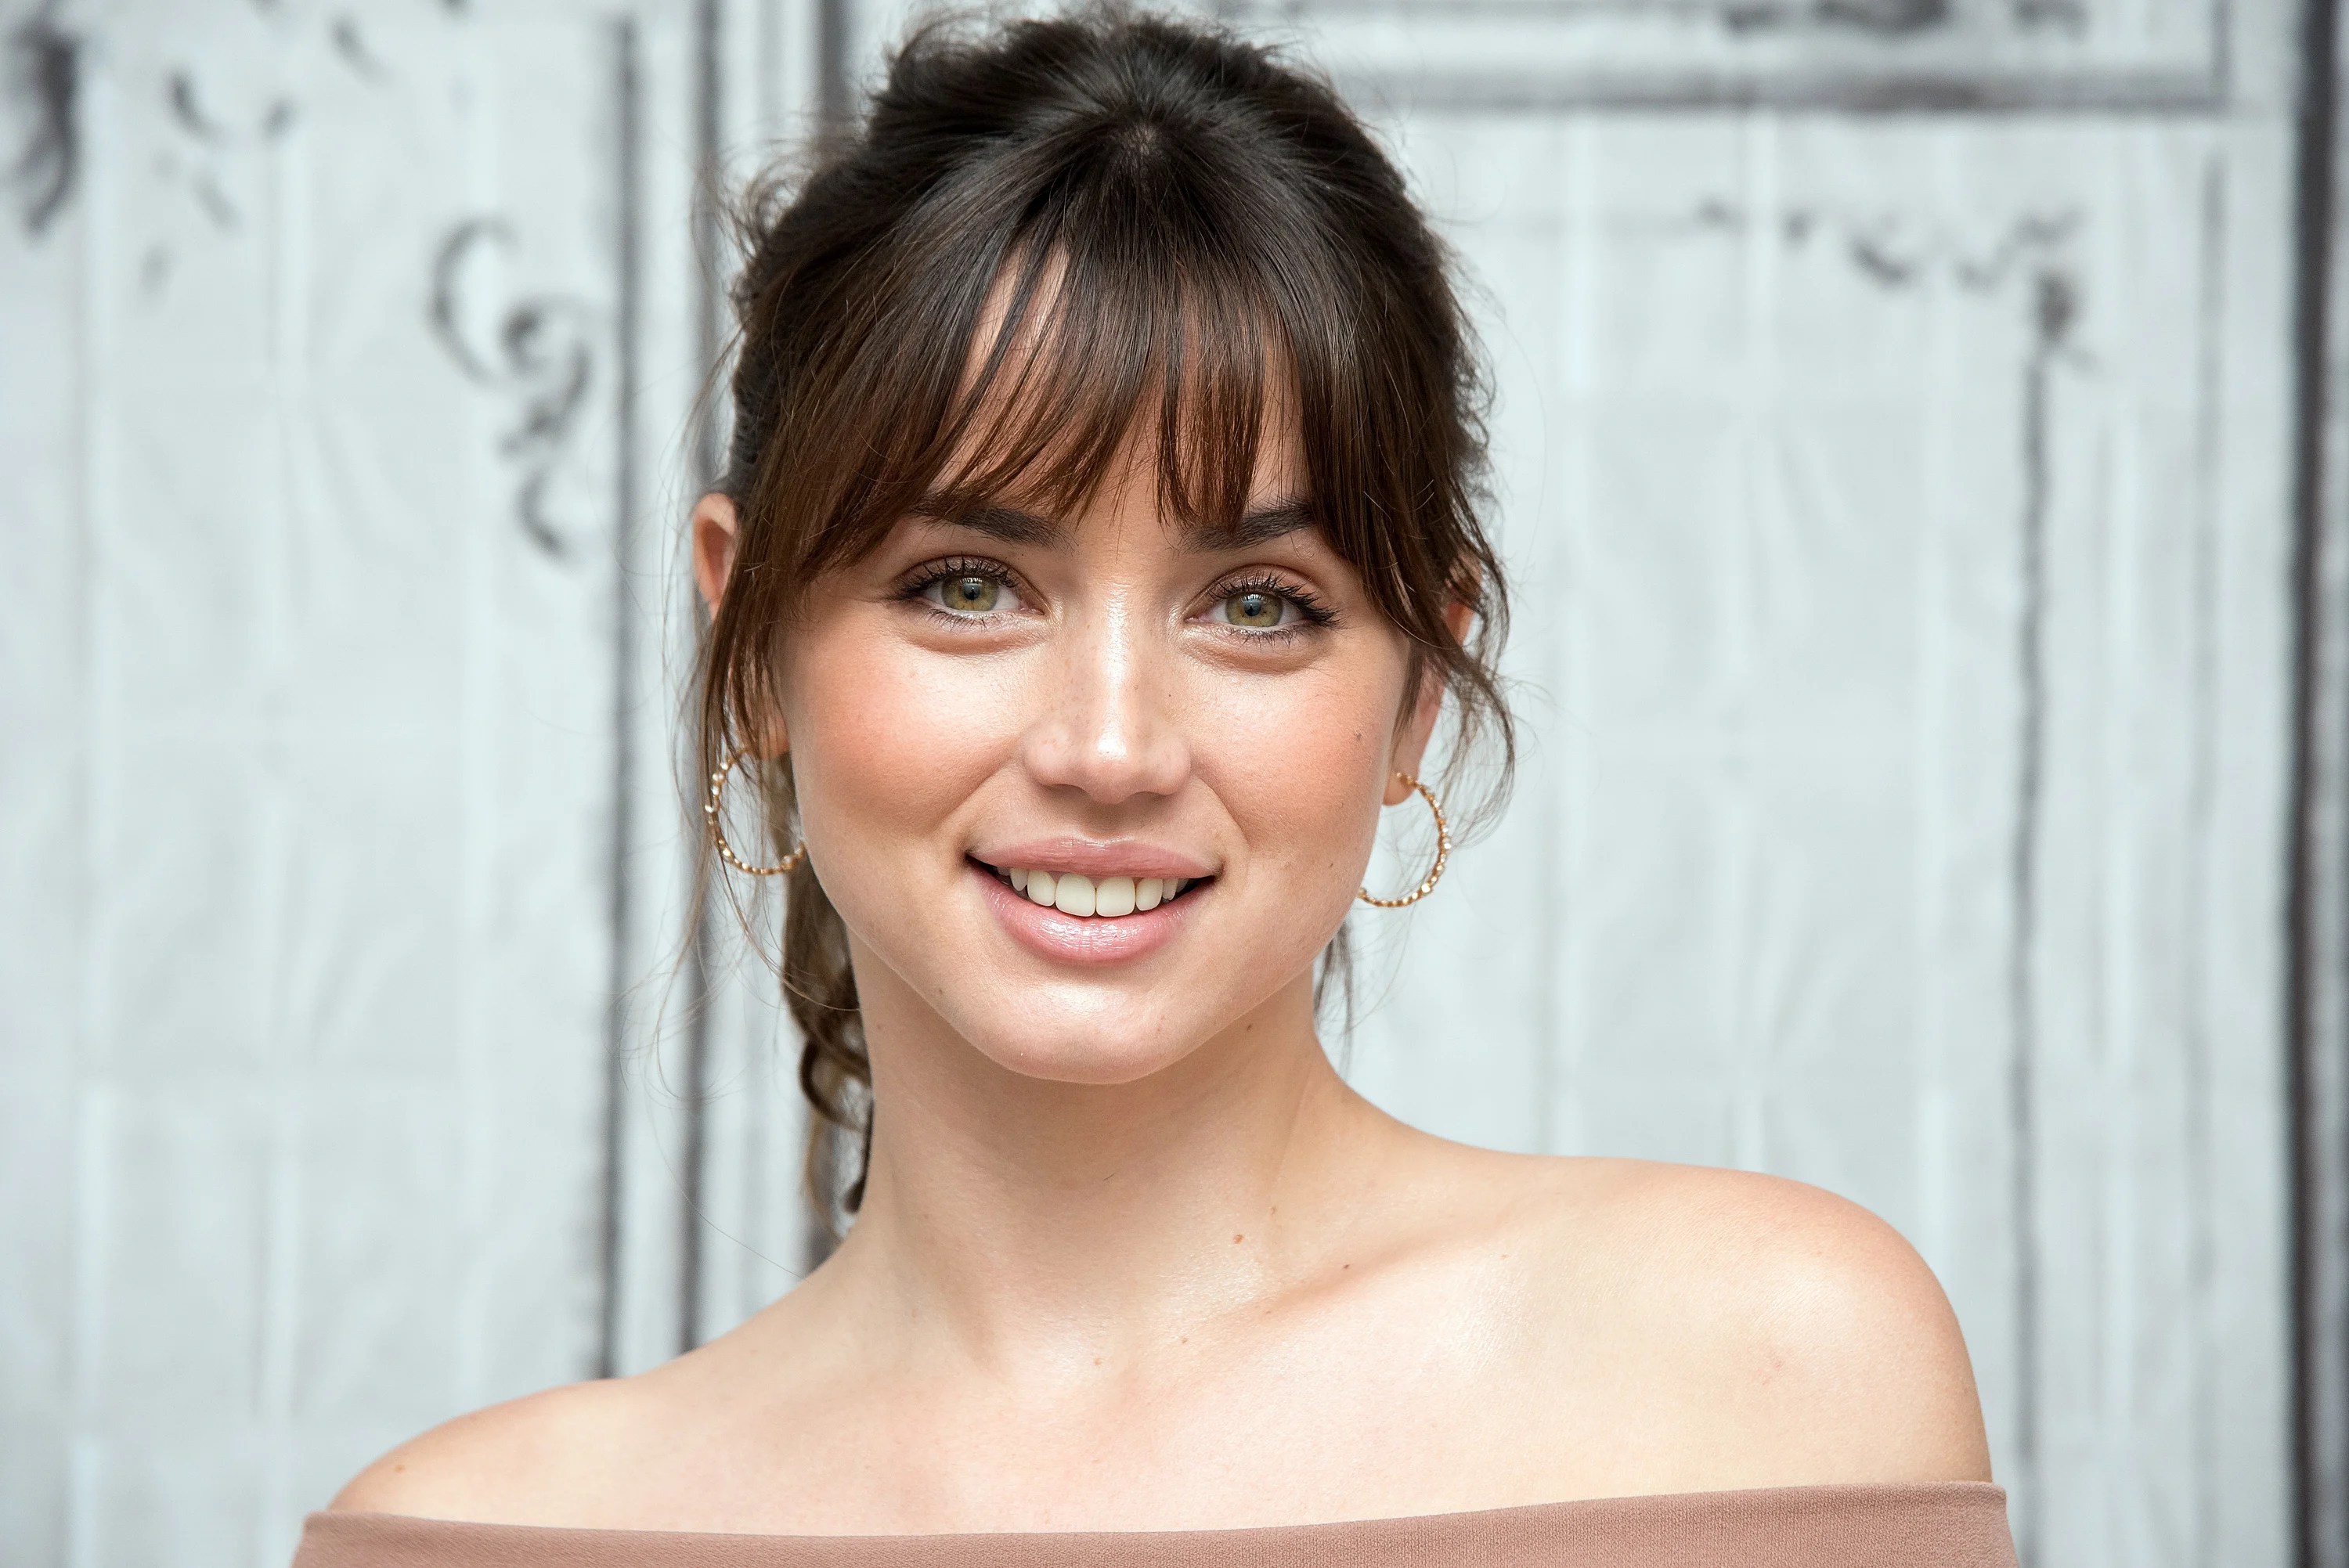 Crown Hd Wallpaper Ana De Armas The Cuban Actress Who S Taking Hollywood By